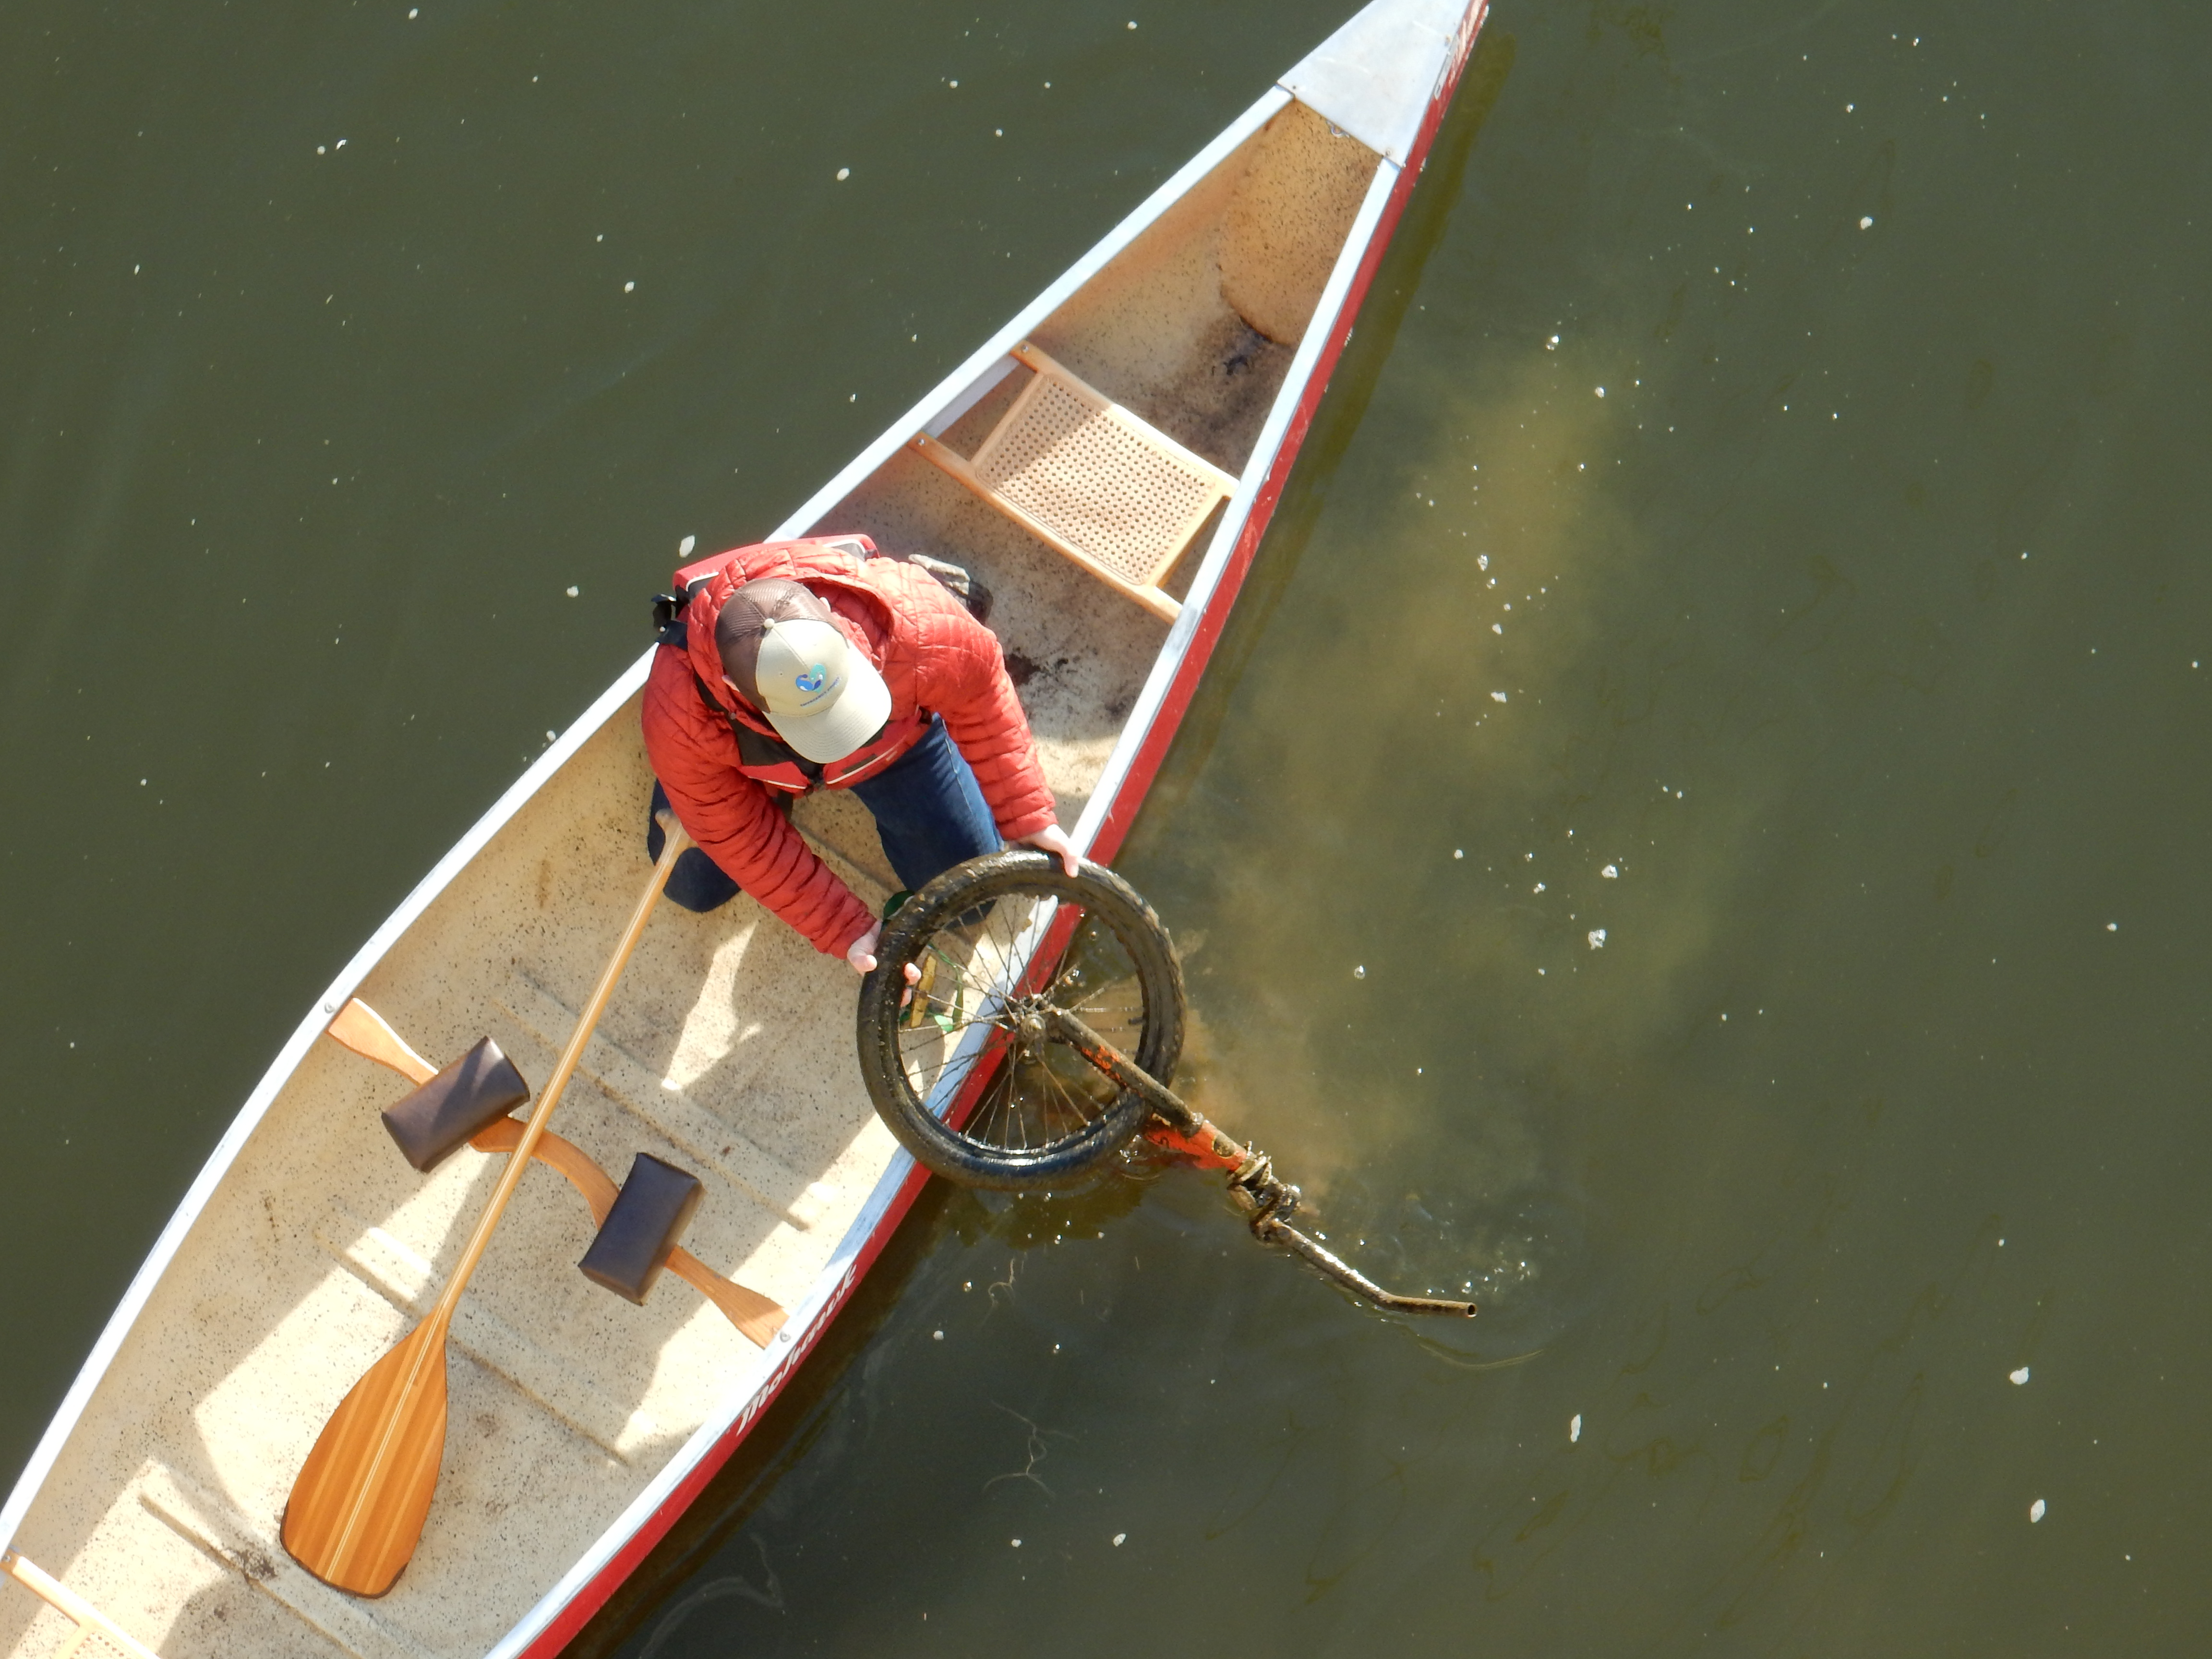 Birds-eye-view of a volunteer in a canoe pulling a bike from the river